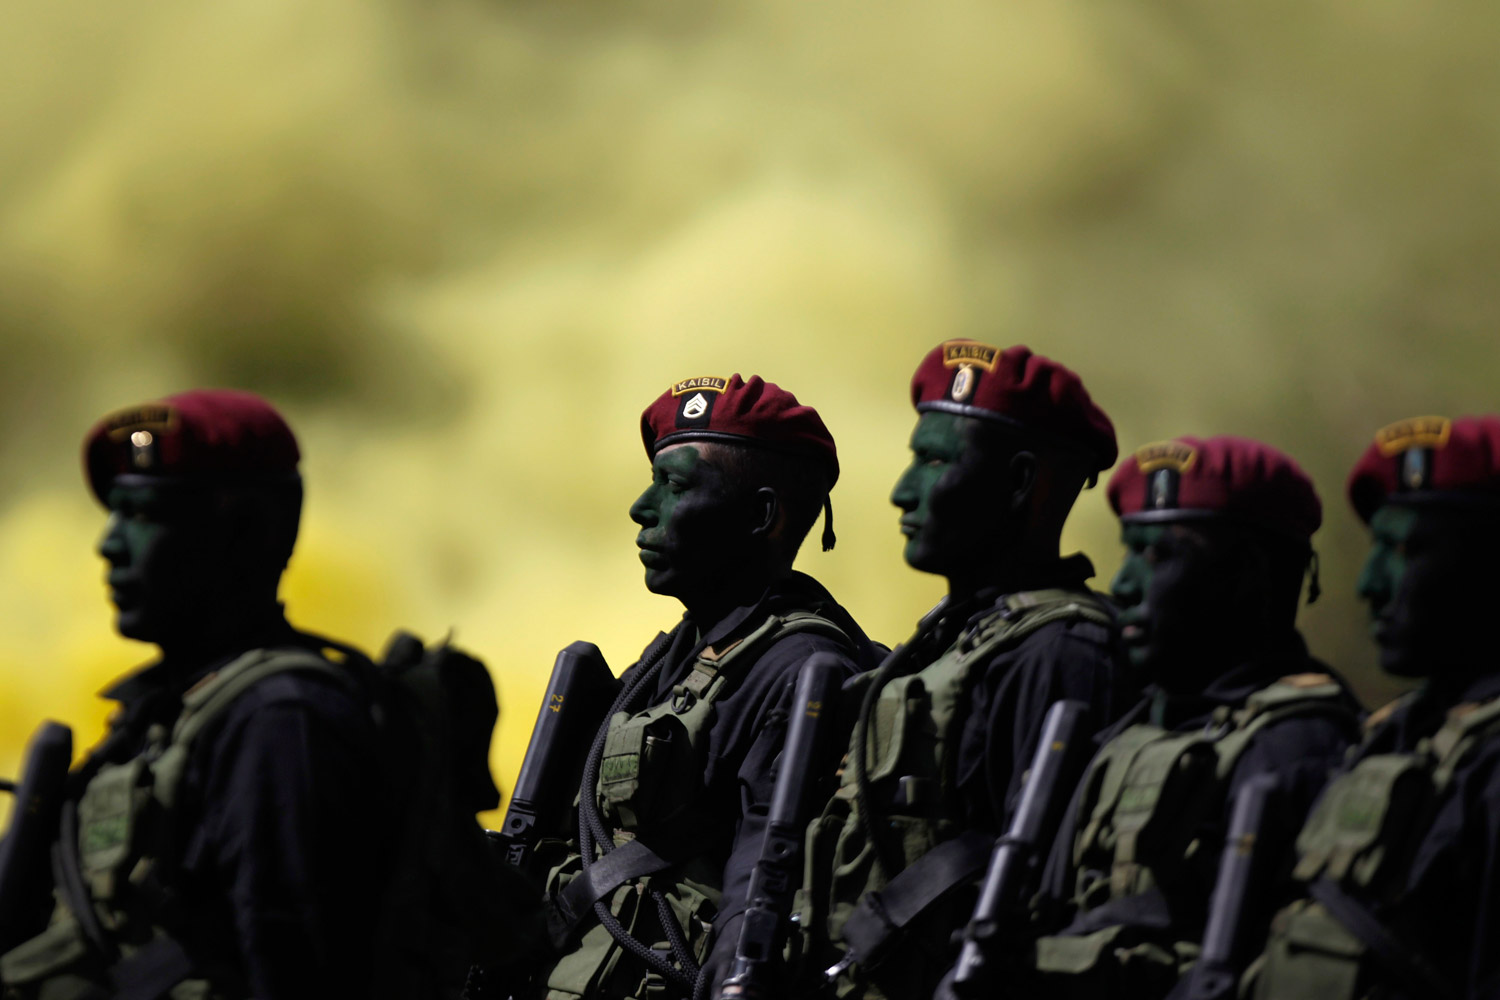 December 5, 2011. Kaibiles, members of Guatemala's special‑operations forces, take part in a ceremony to mark their graduation from a harsh training course. The controversial counterinsurgency unit within the Guatemalan army was founded in 1974; just nine soldiers successfully completed the course.